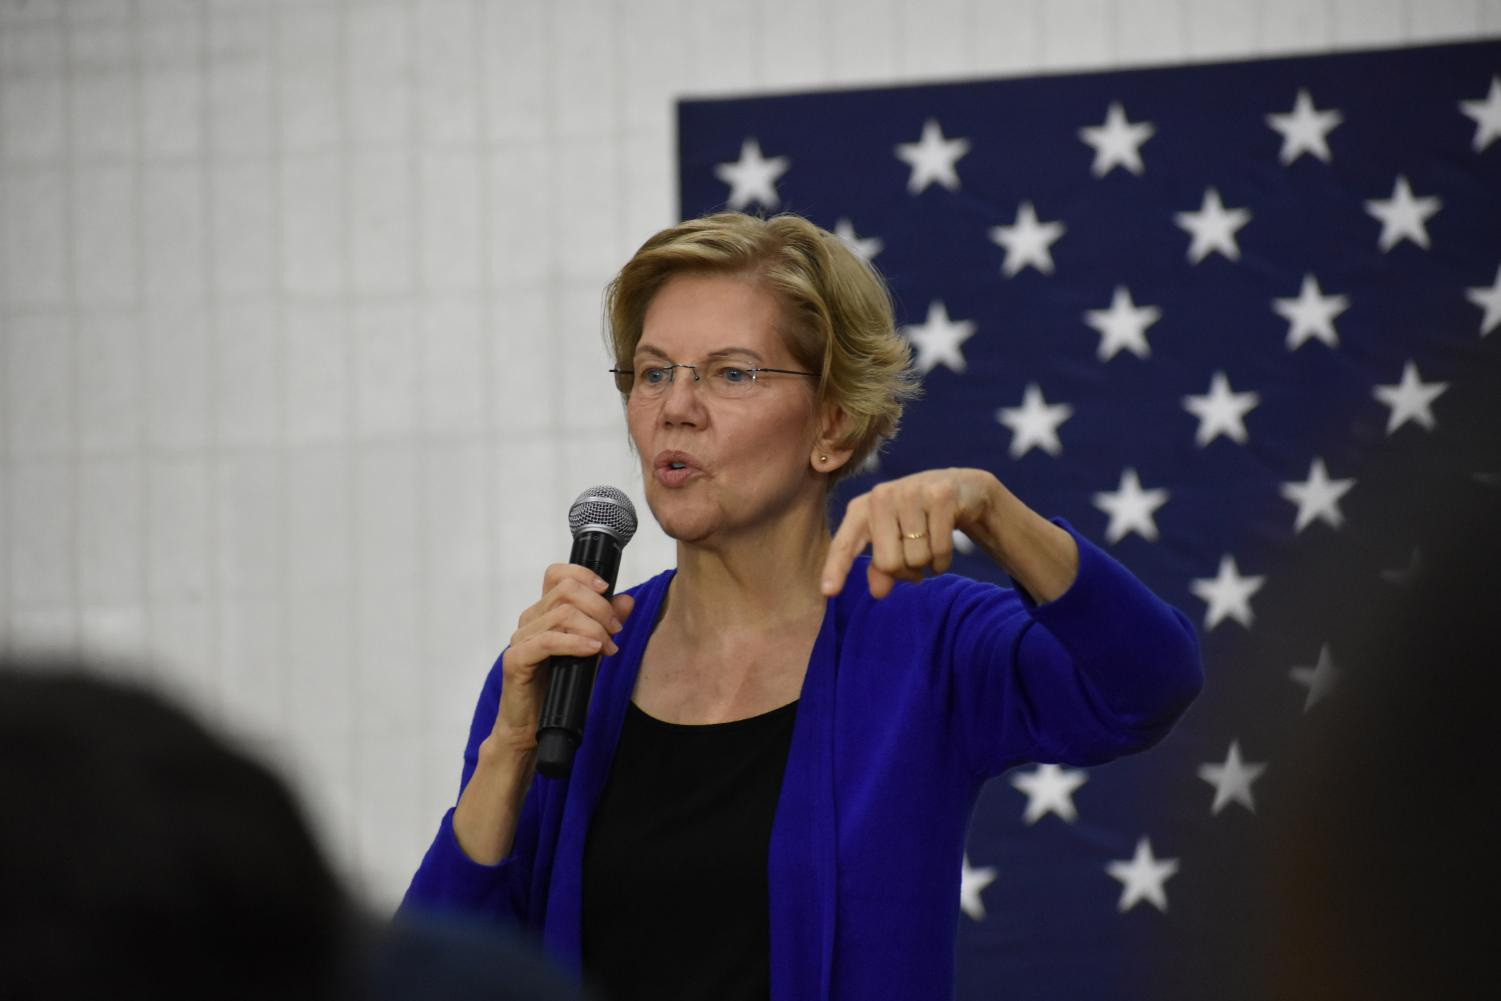 Warren talks to the crowd. She addressed the crowd using hand motions to add emphasis and get them more involved as she spoke